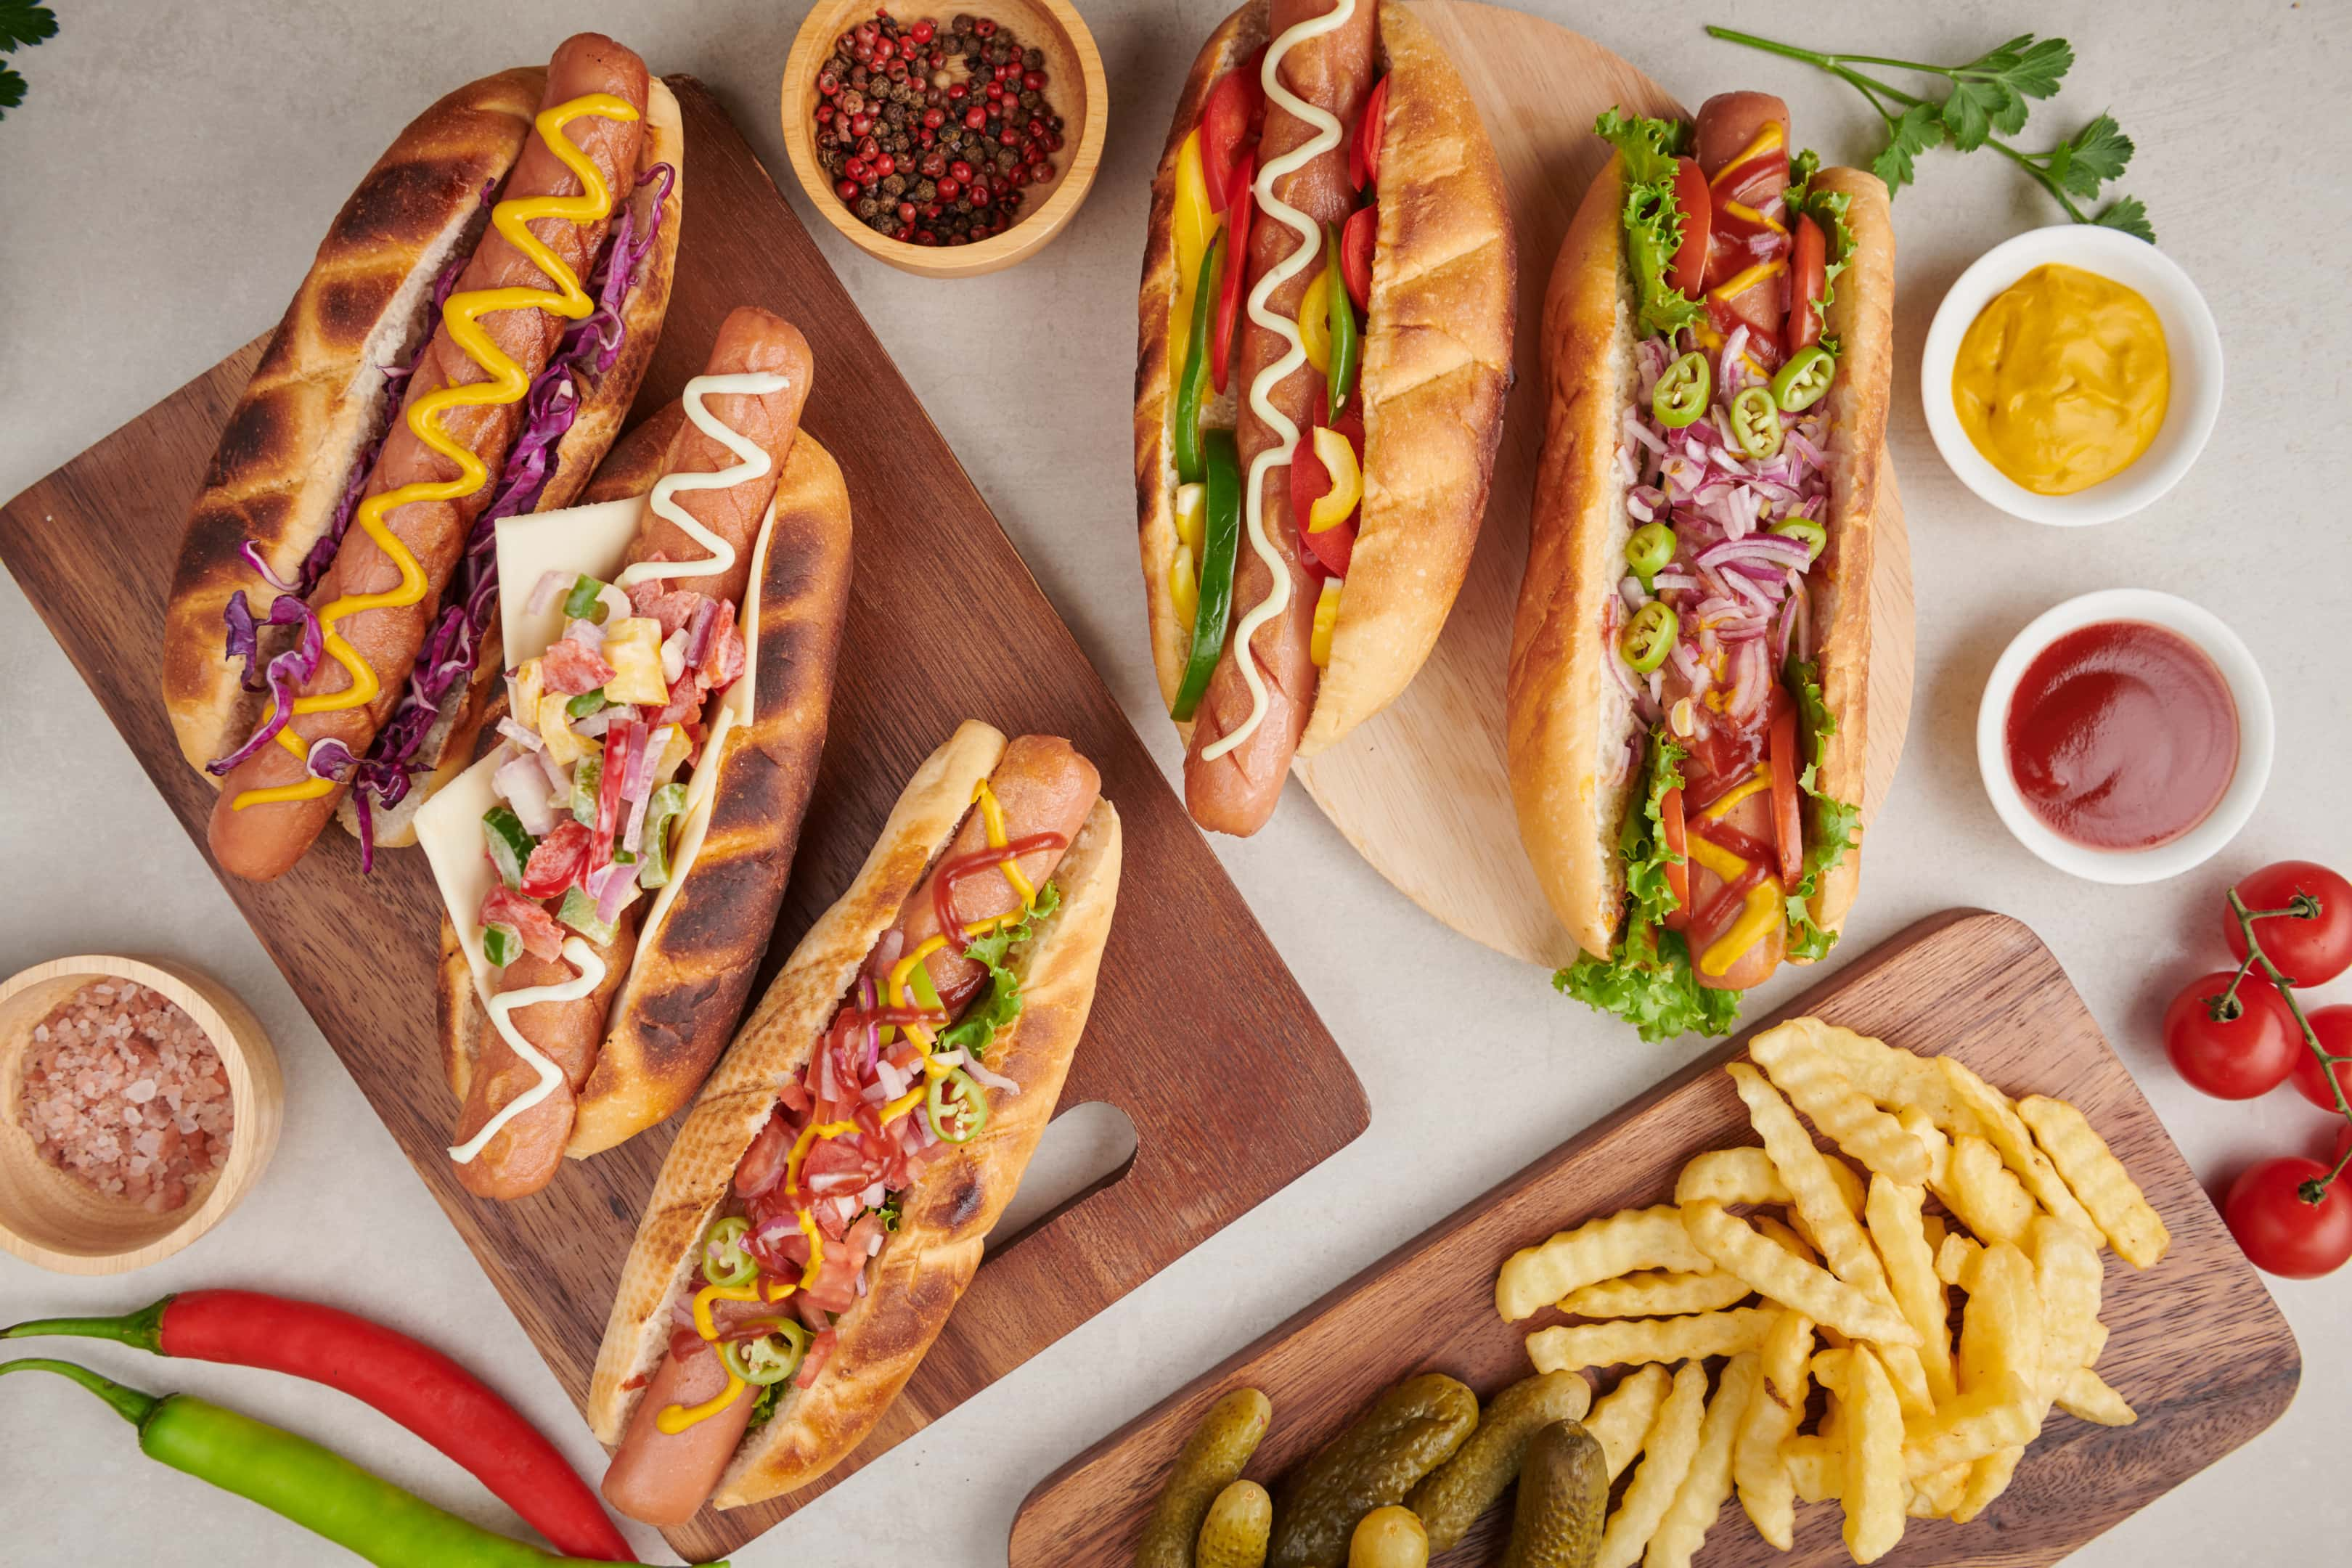 Grilled hot dog sausages with sides chips